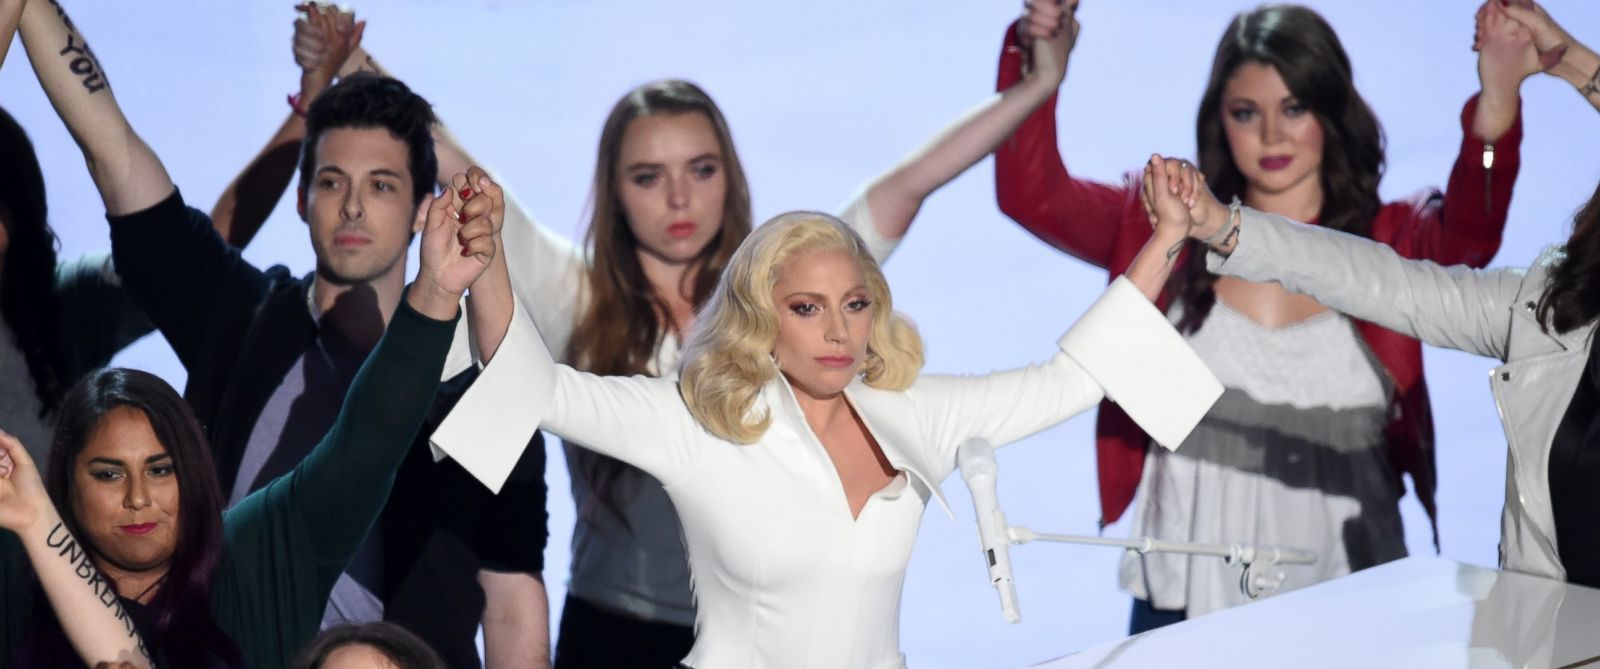 PHOTO: Lady Gaga performs onstage during the 88th Annual Academy Awards at the Dolby Theatre, Feb. 28, 2016 in Hollywood, California.